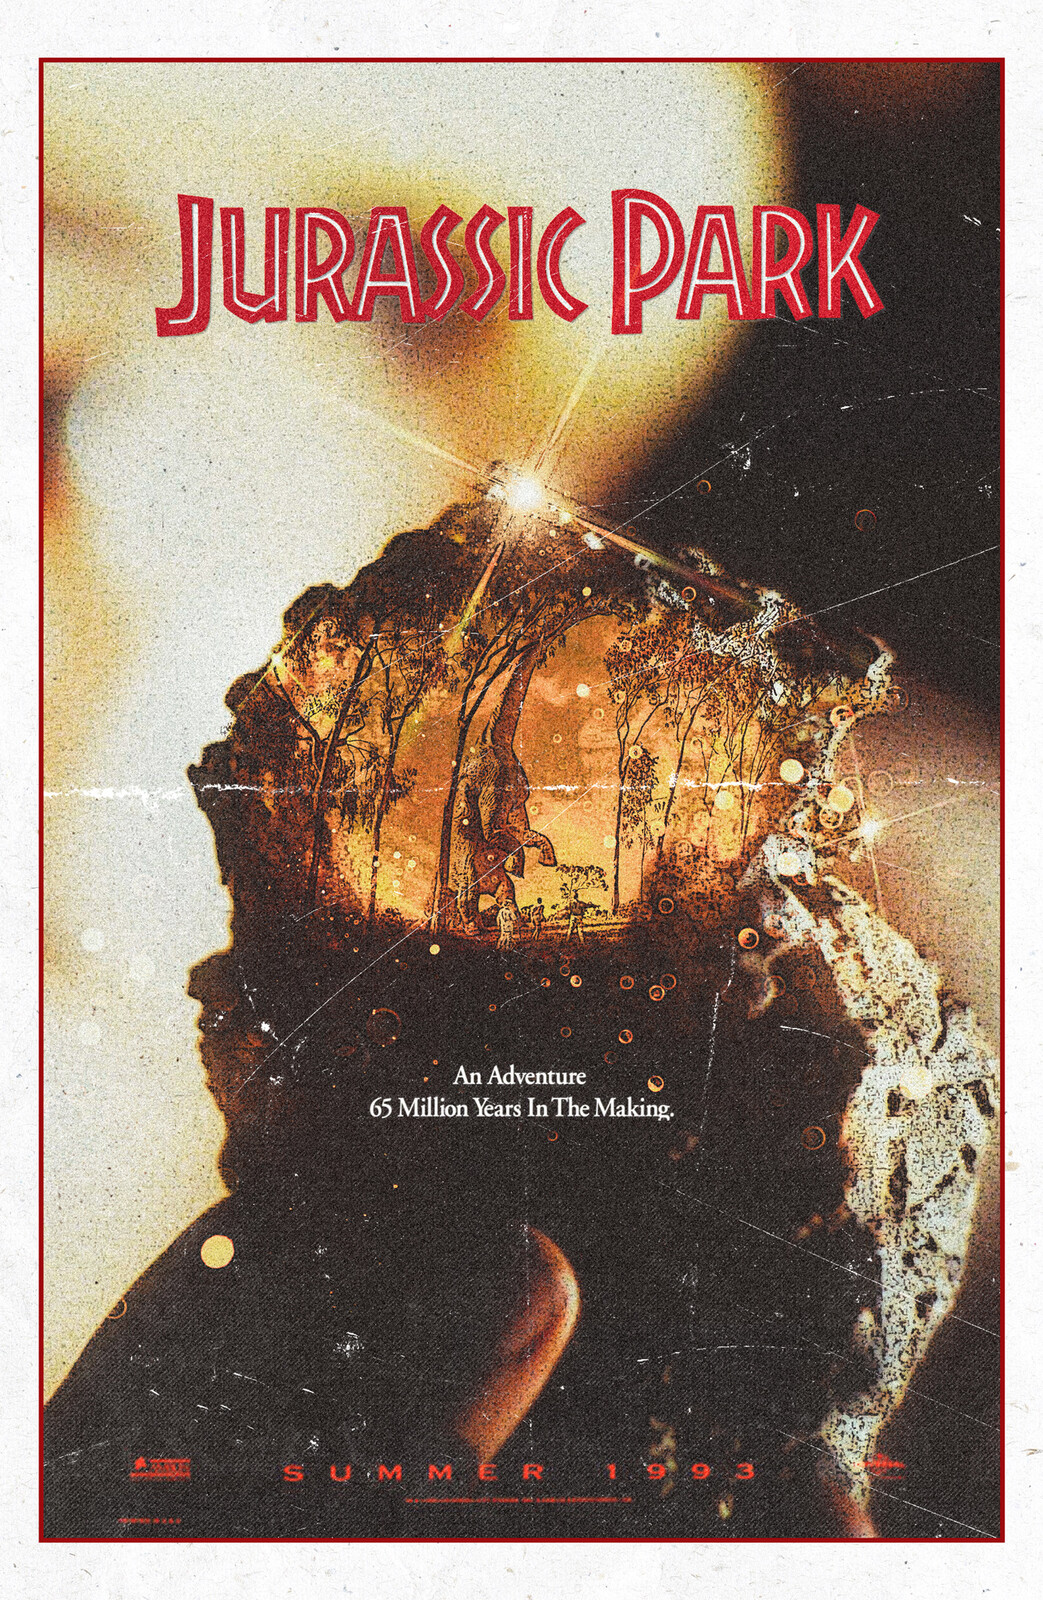 Jurassic Park Alternate Movie Poster by Nima Neemz Nakhshab